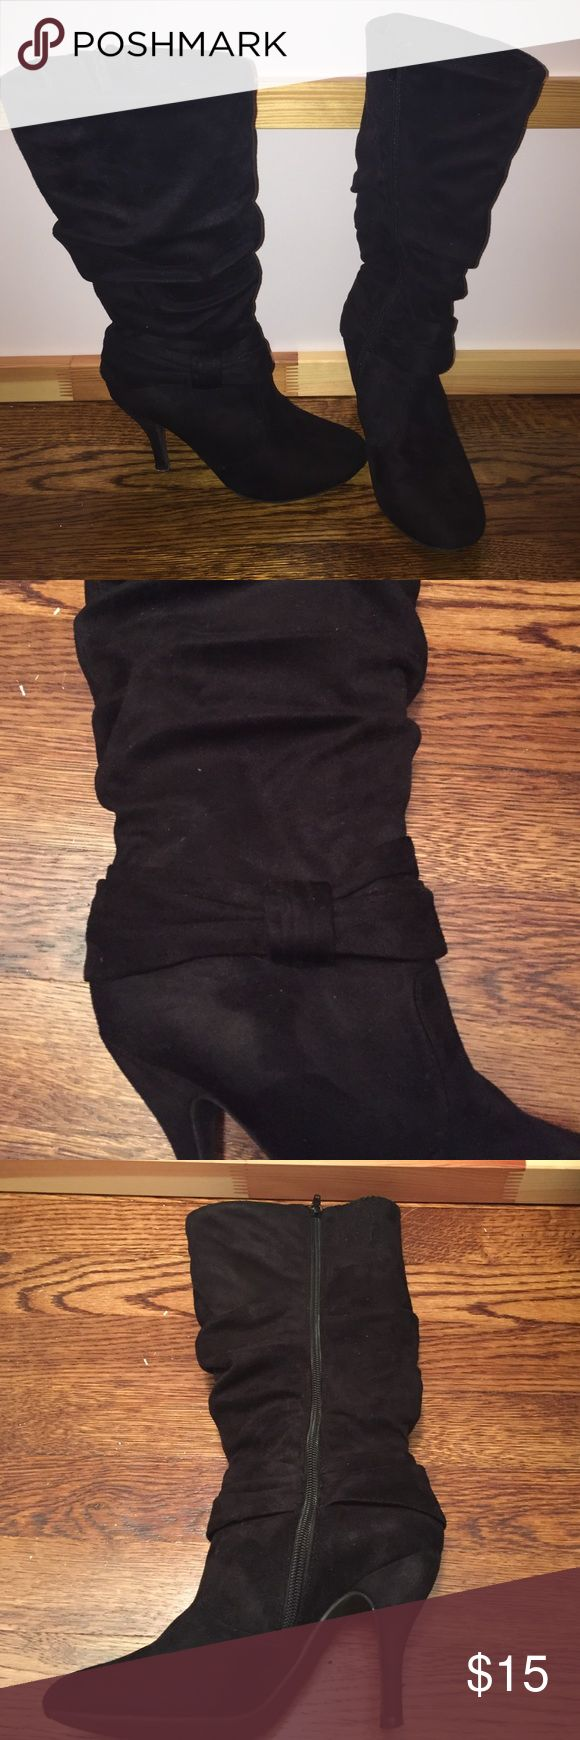 Charlotte Russe calf high boots Suede type material. Worn. Couple marks on back left heel. Believe they're a size 6. Can't locate size on or inside boot. Charlotte Russe Shoes Heeled Boots